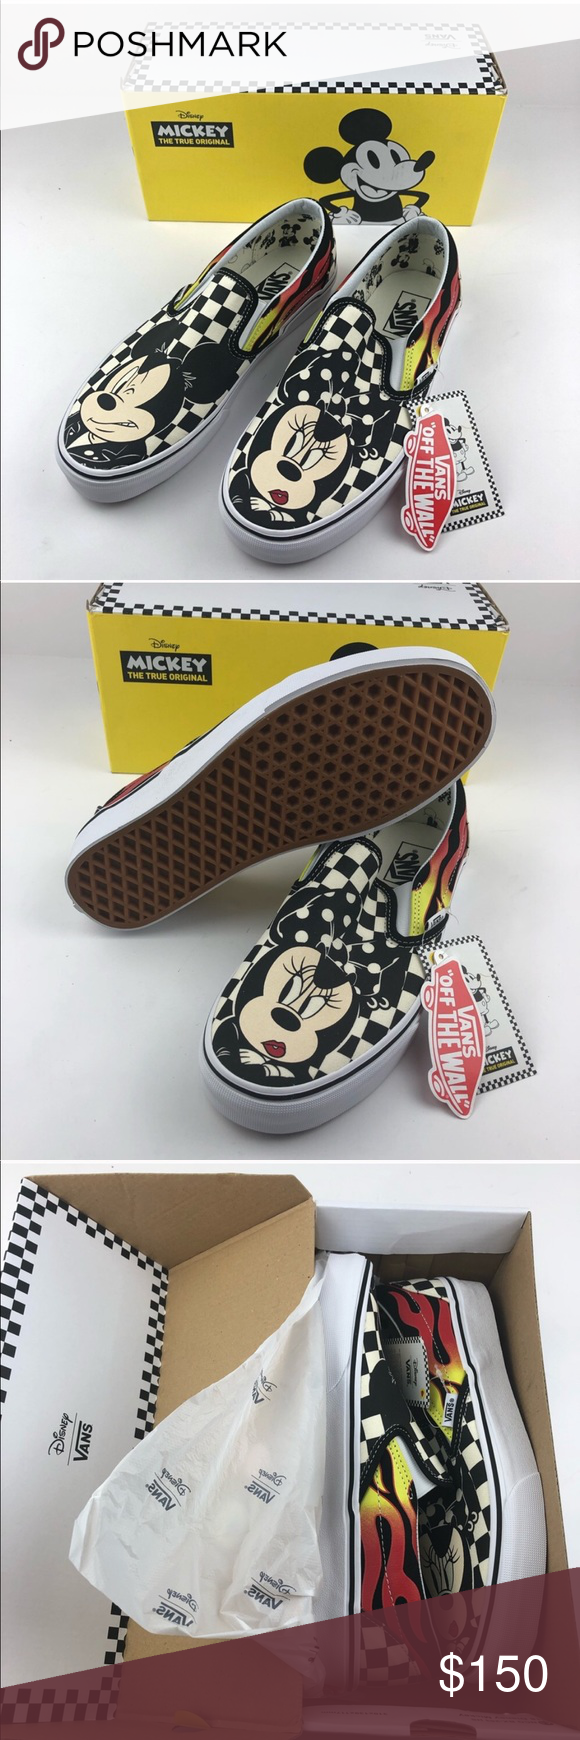 Vans Disney Mickey Mouse Limited Edition Flames Nwb 90th